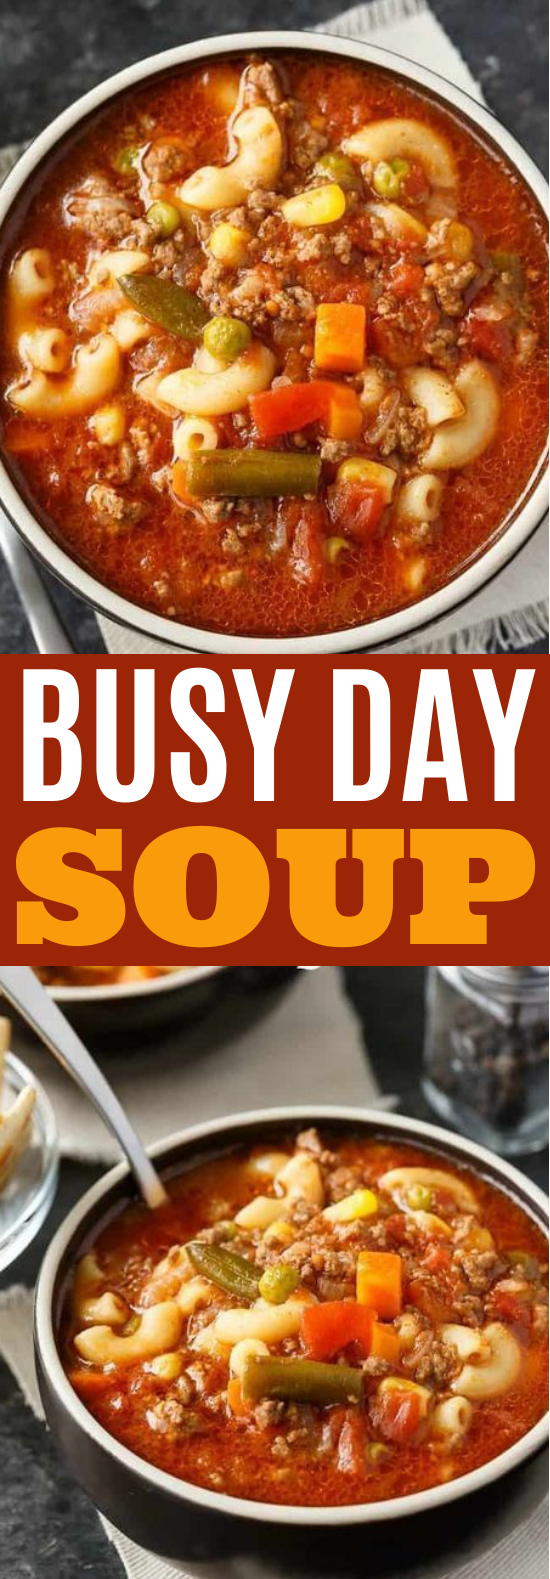 Busy Day Soup #soup #recipes #dinner #comfortfood #weeknight